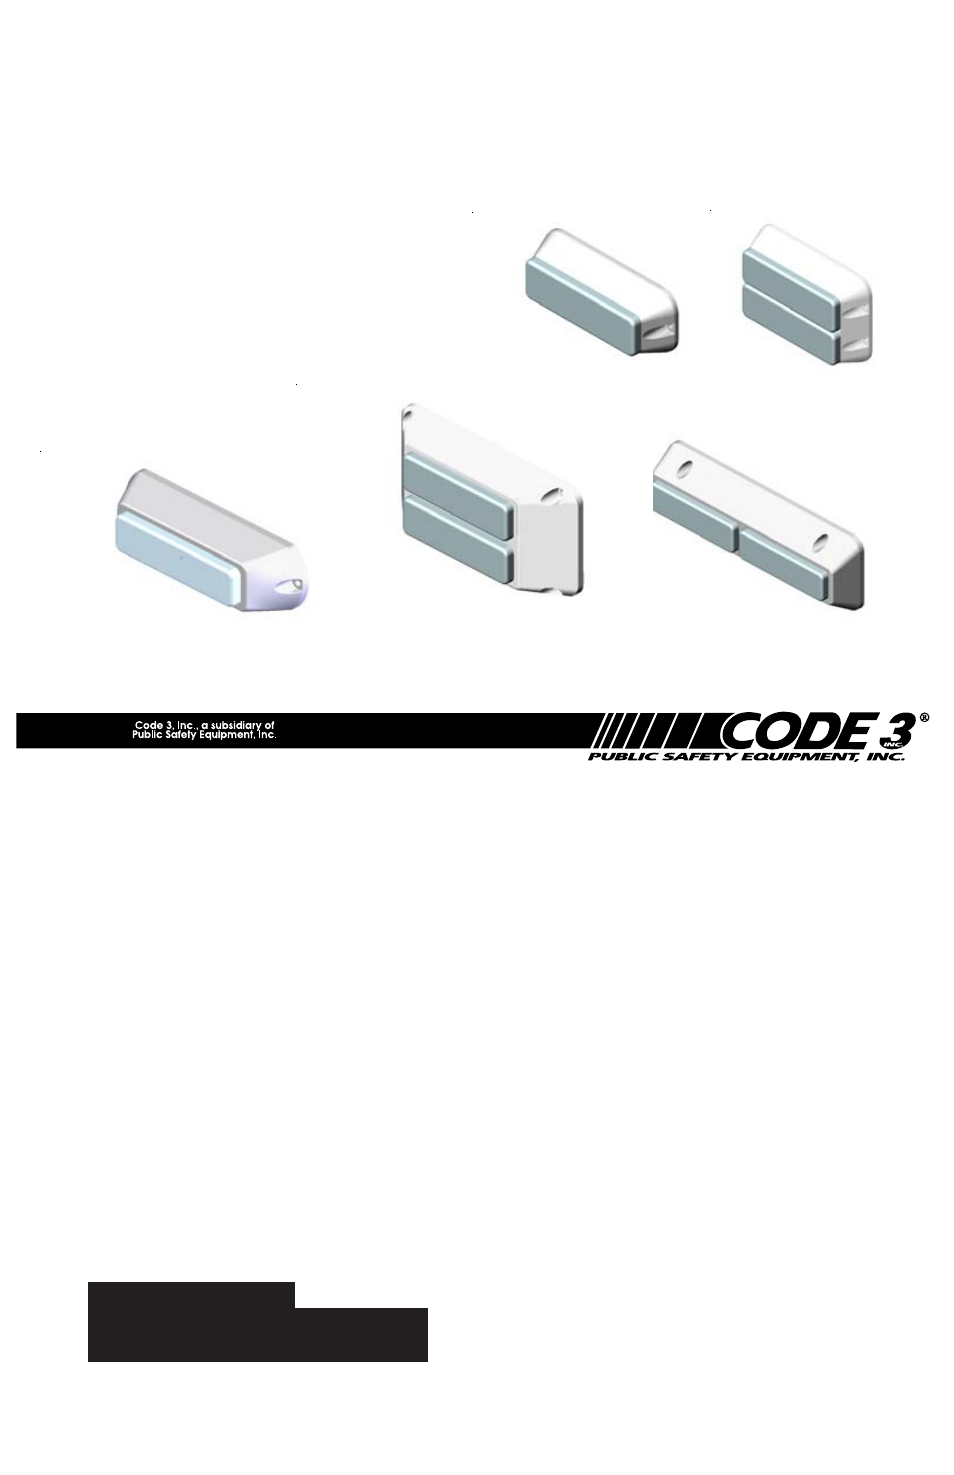 Code 3 Led X Exterior Lights User Manual 12 Pages Module Wiring Diagram